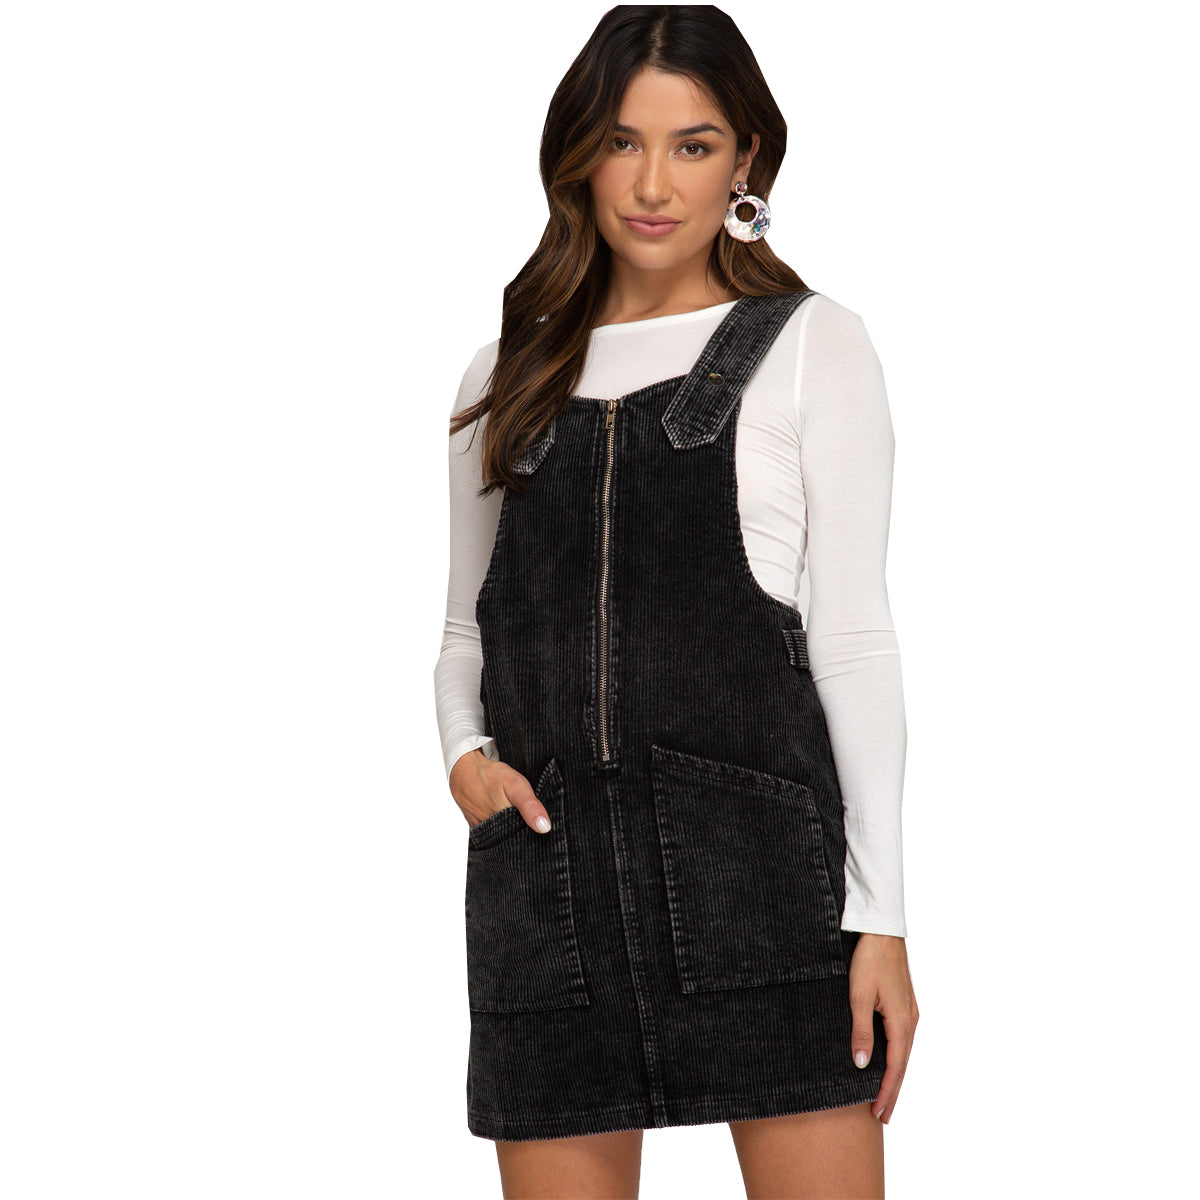 She and Sky Corduroy Washed Overalls Mini Dress - Black